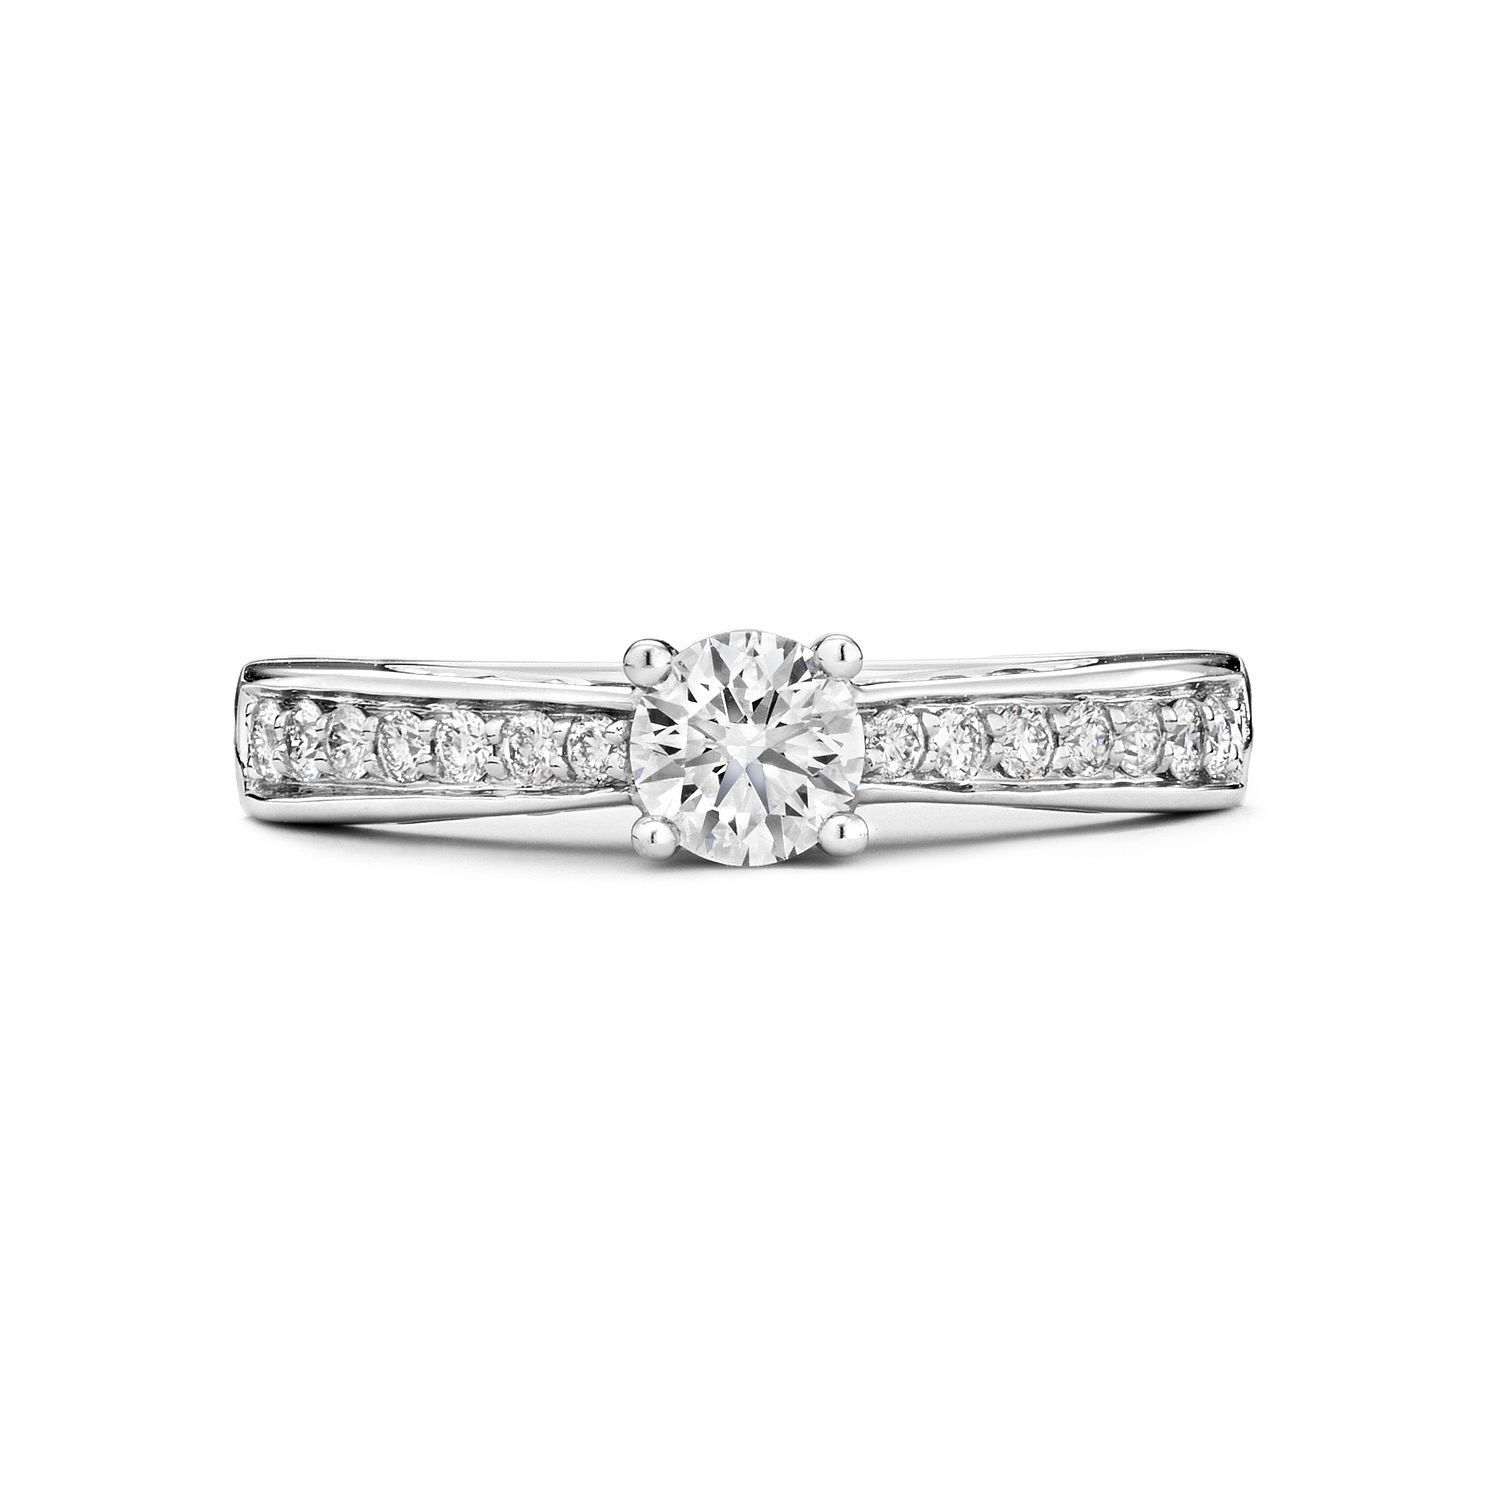 Tolkowsky 18ct White Gold 1/2ct I-I1 Diamond Ring - Product number 9708286